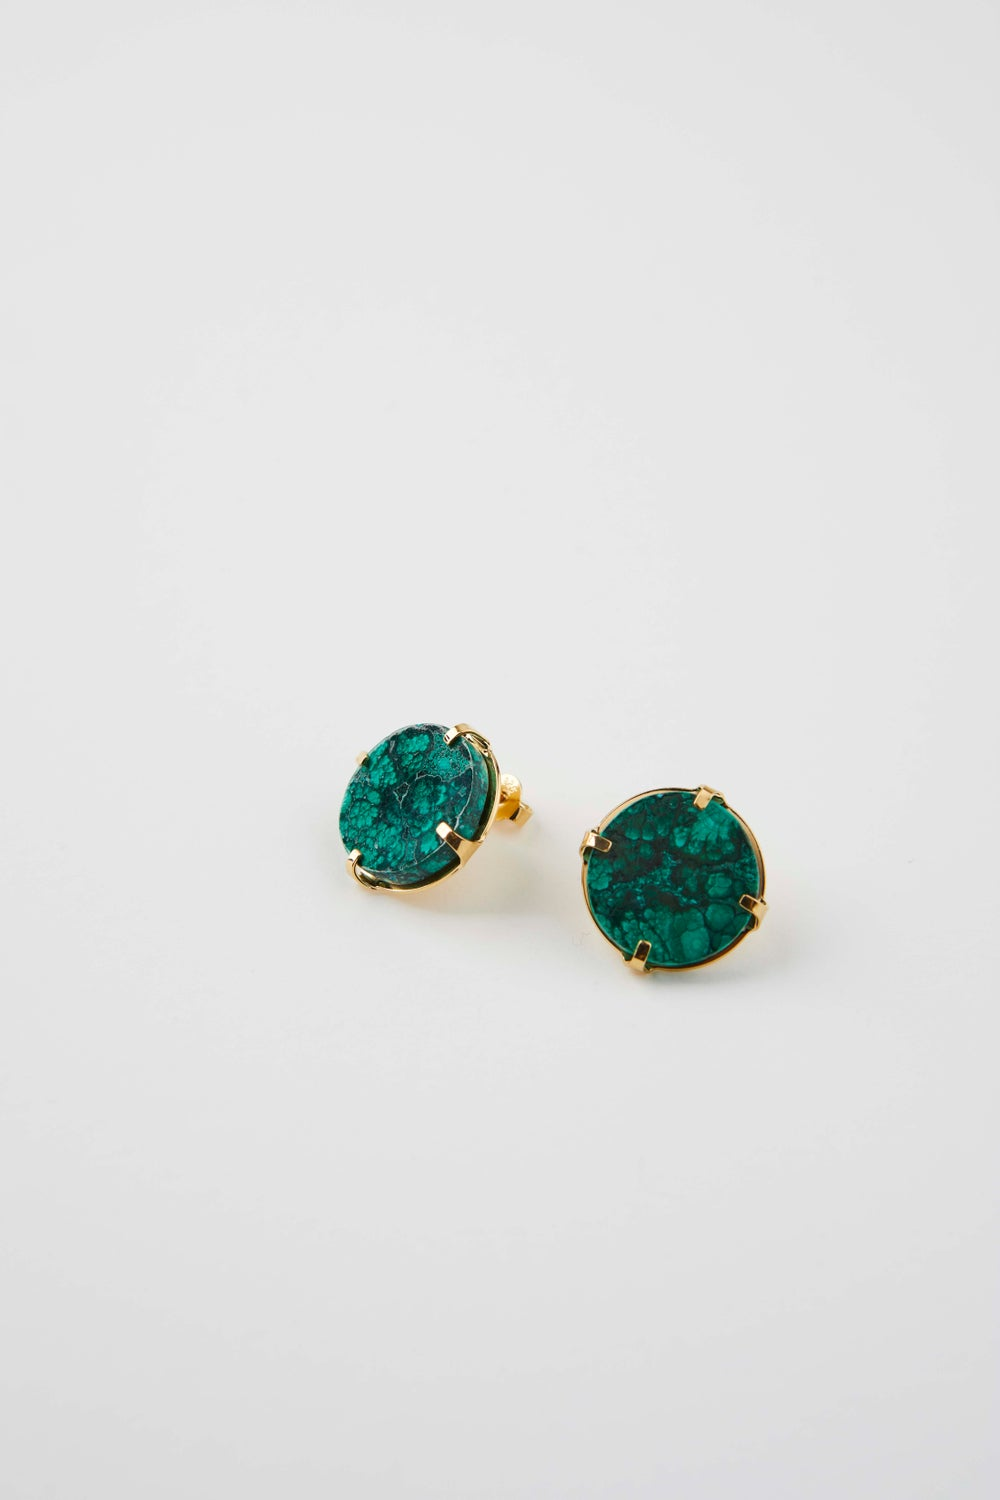 Image of Boucles d'oreilles malachite